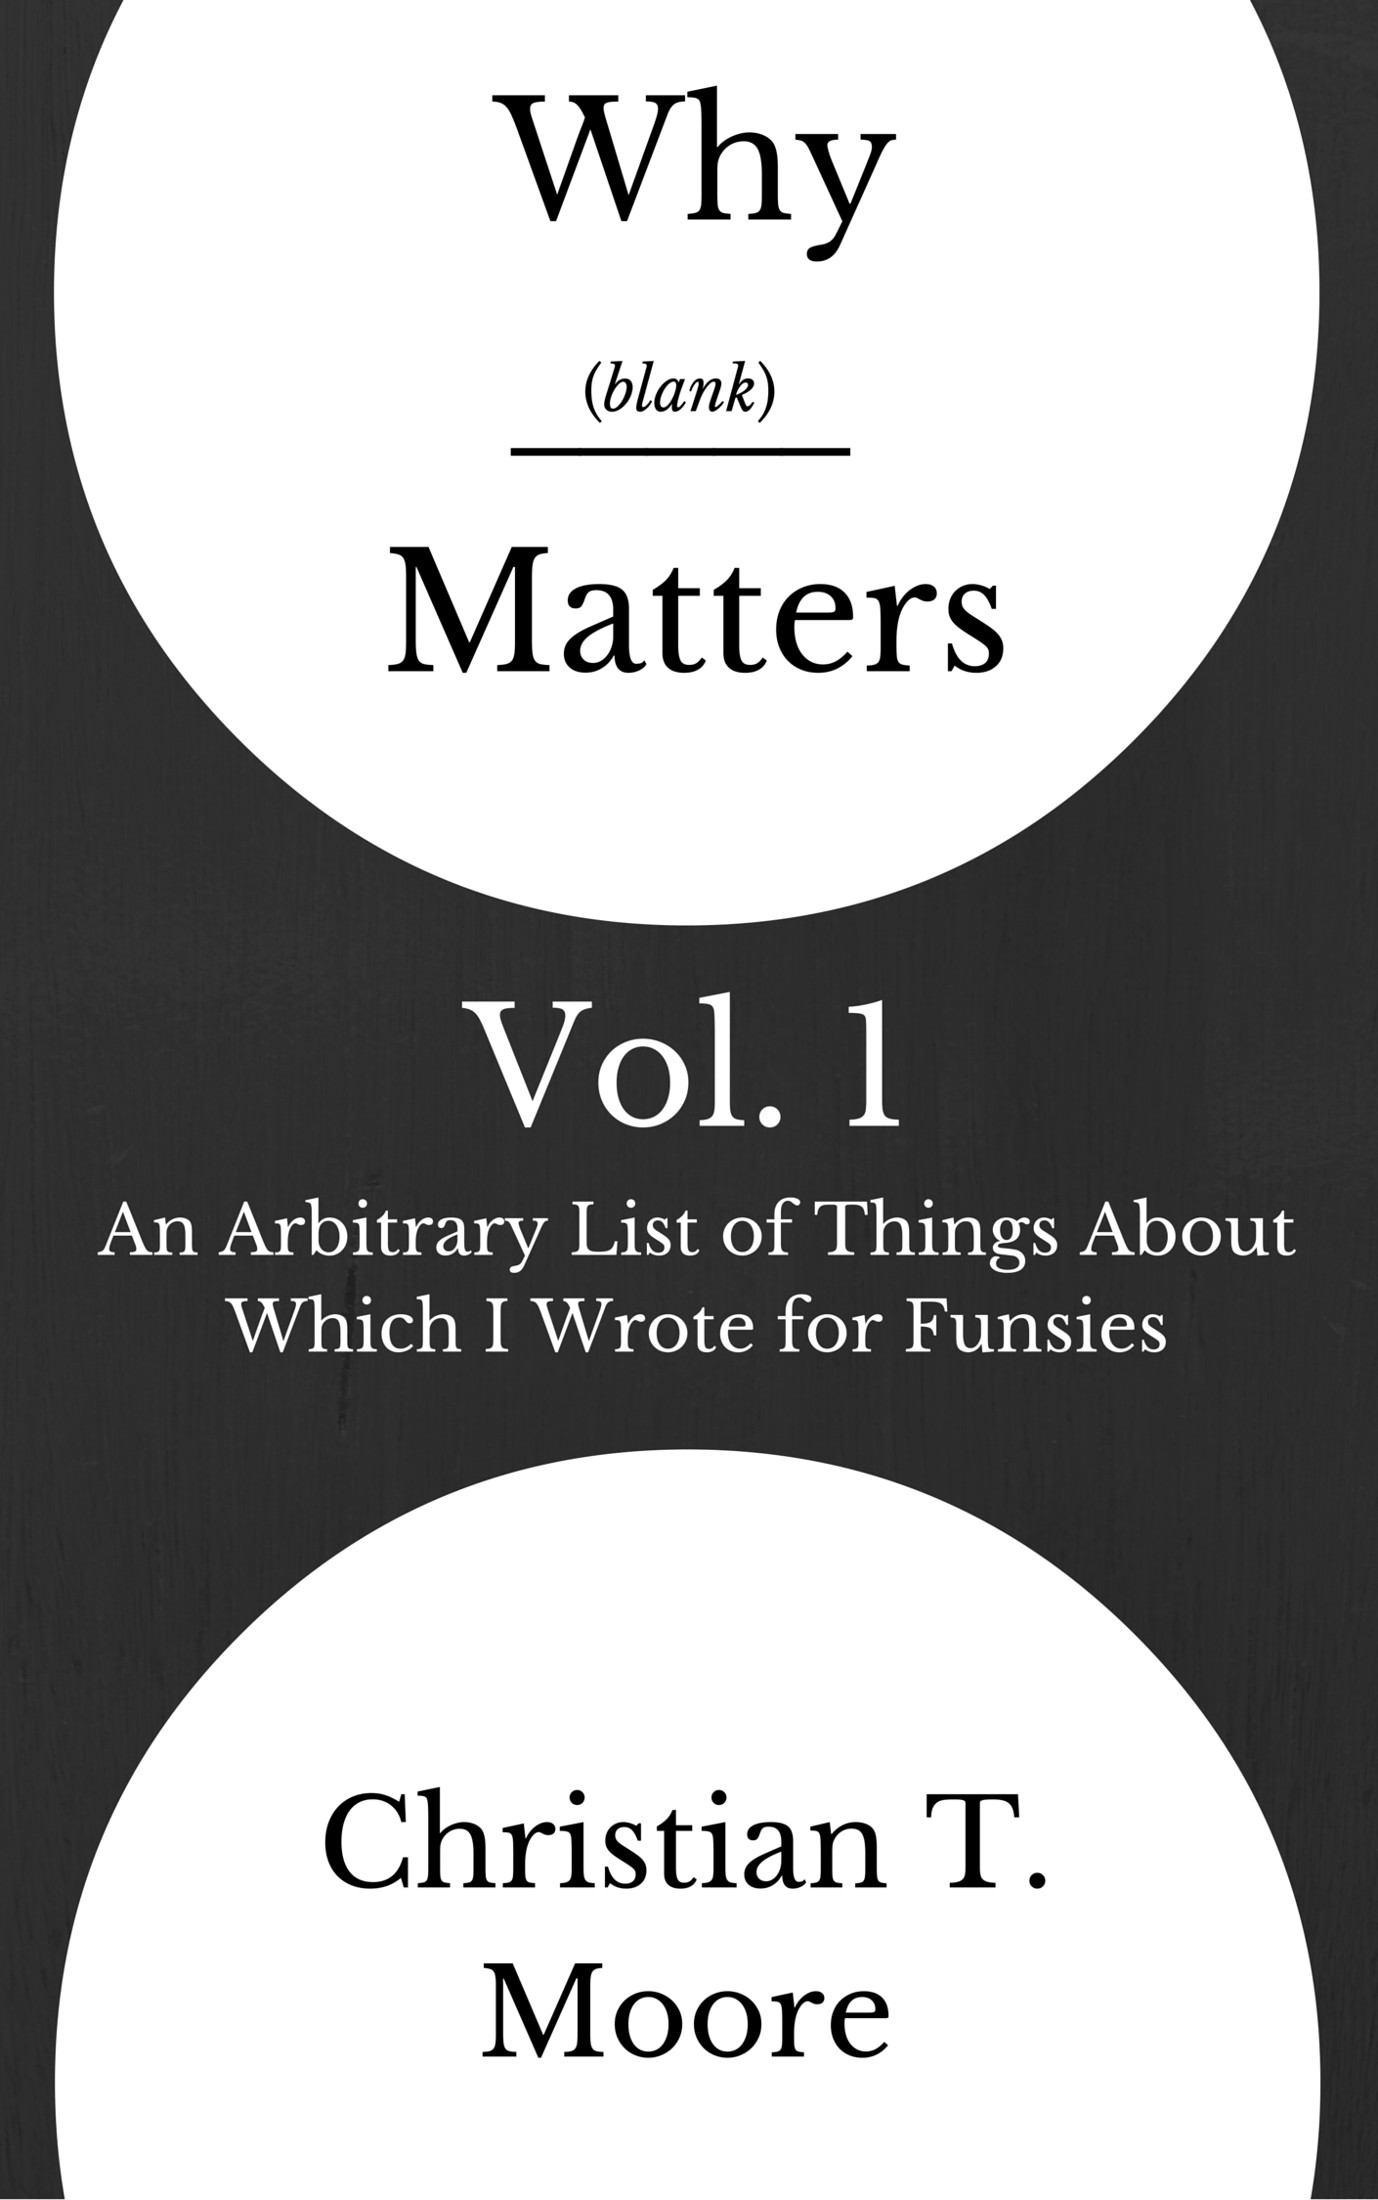 Why Blank Matters, Vol. 1: An Arbitrary List of Things About Which I Wrote for Funsies